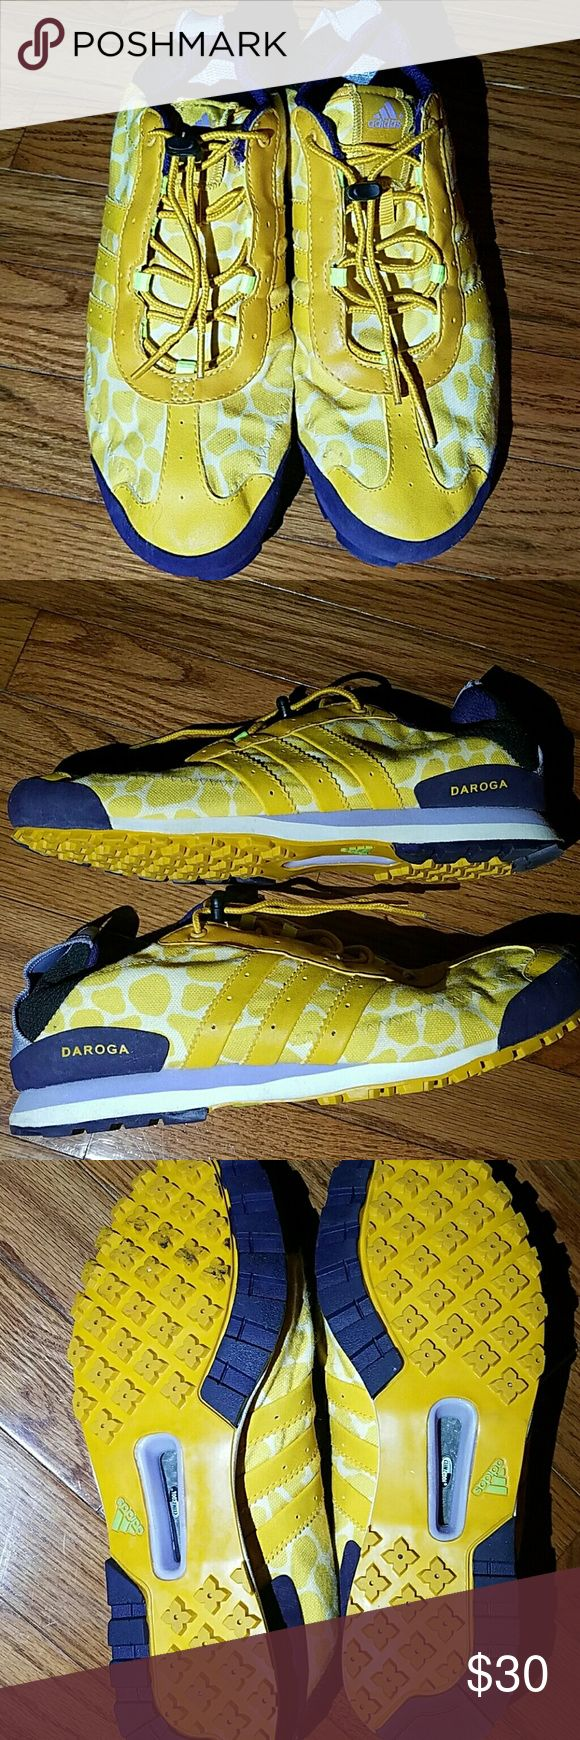 ADIDAS DAROGA Pre Loved but still very new! Size 10 women's.  Excellent tread,  climate cool. Adidas Shoes Athletic Shoes